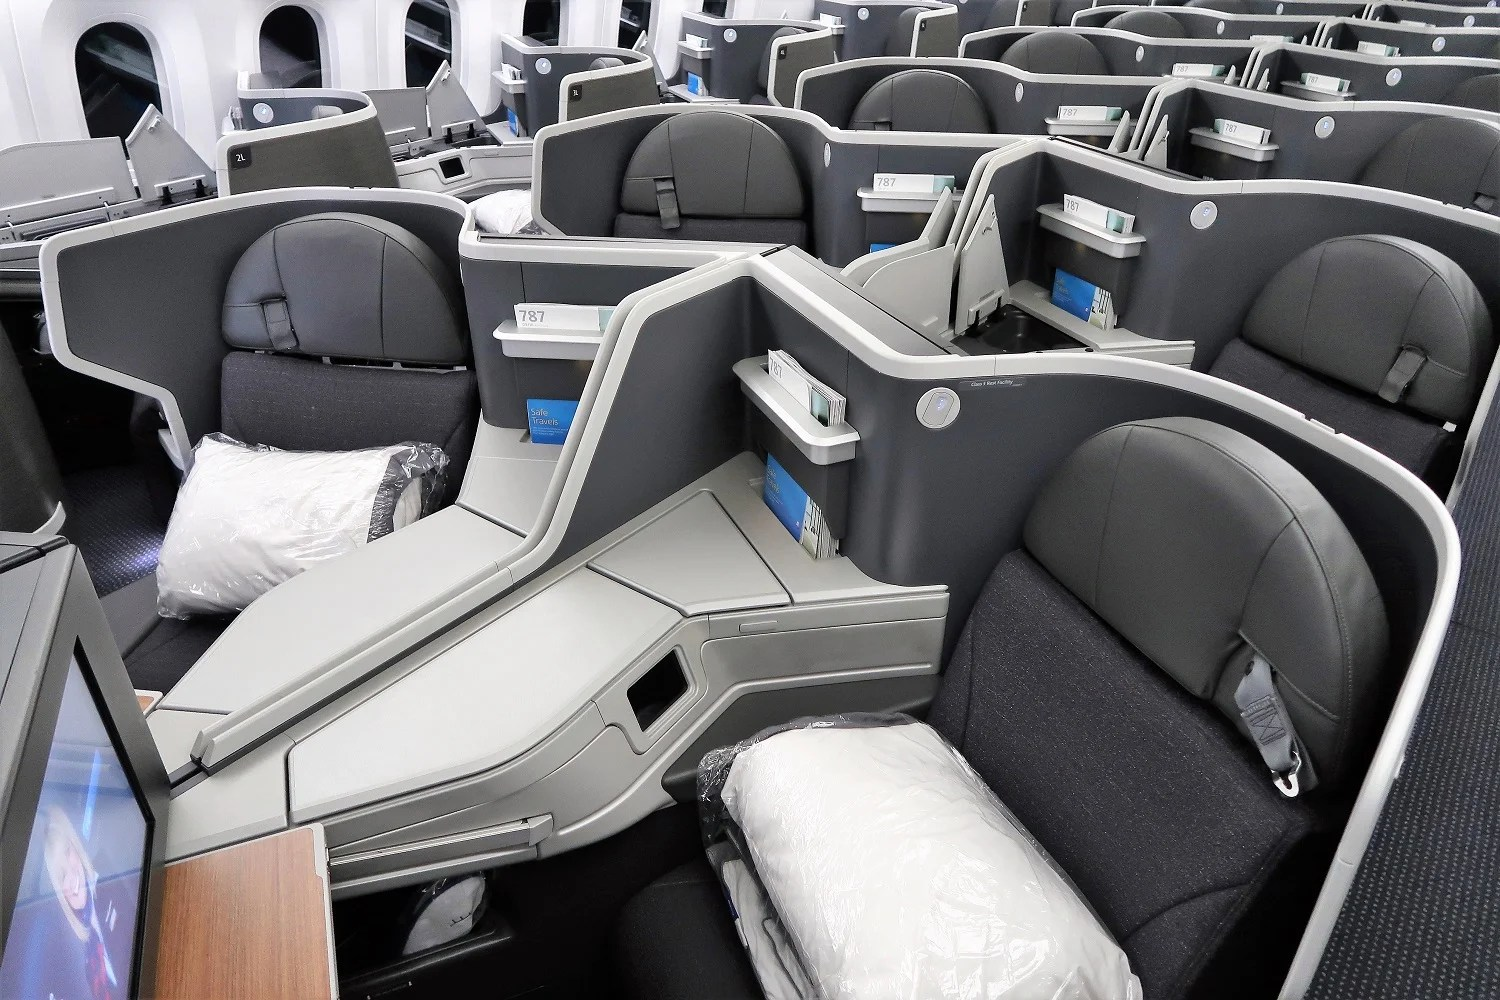 How Can I Tell When Airlines Have Available Upgrade Space?